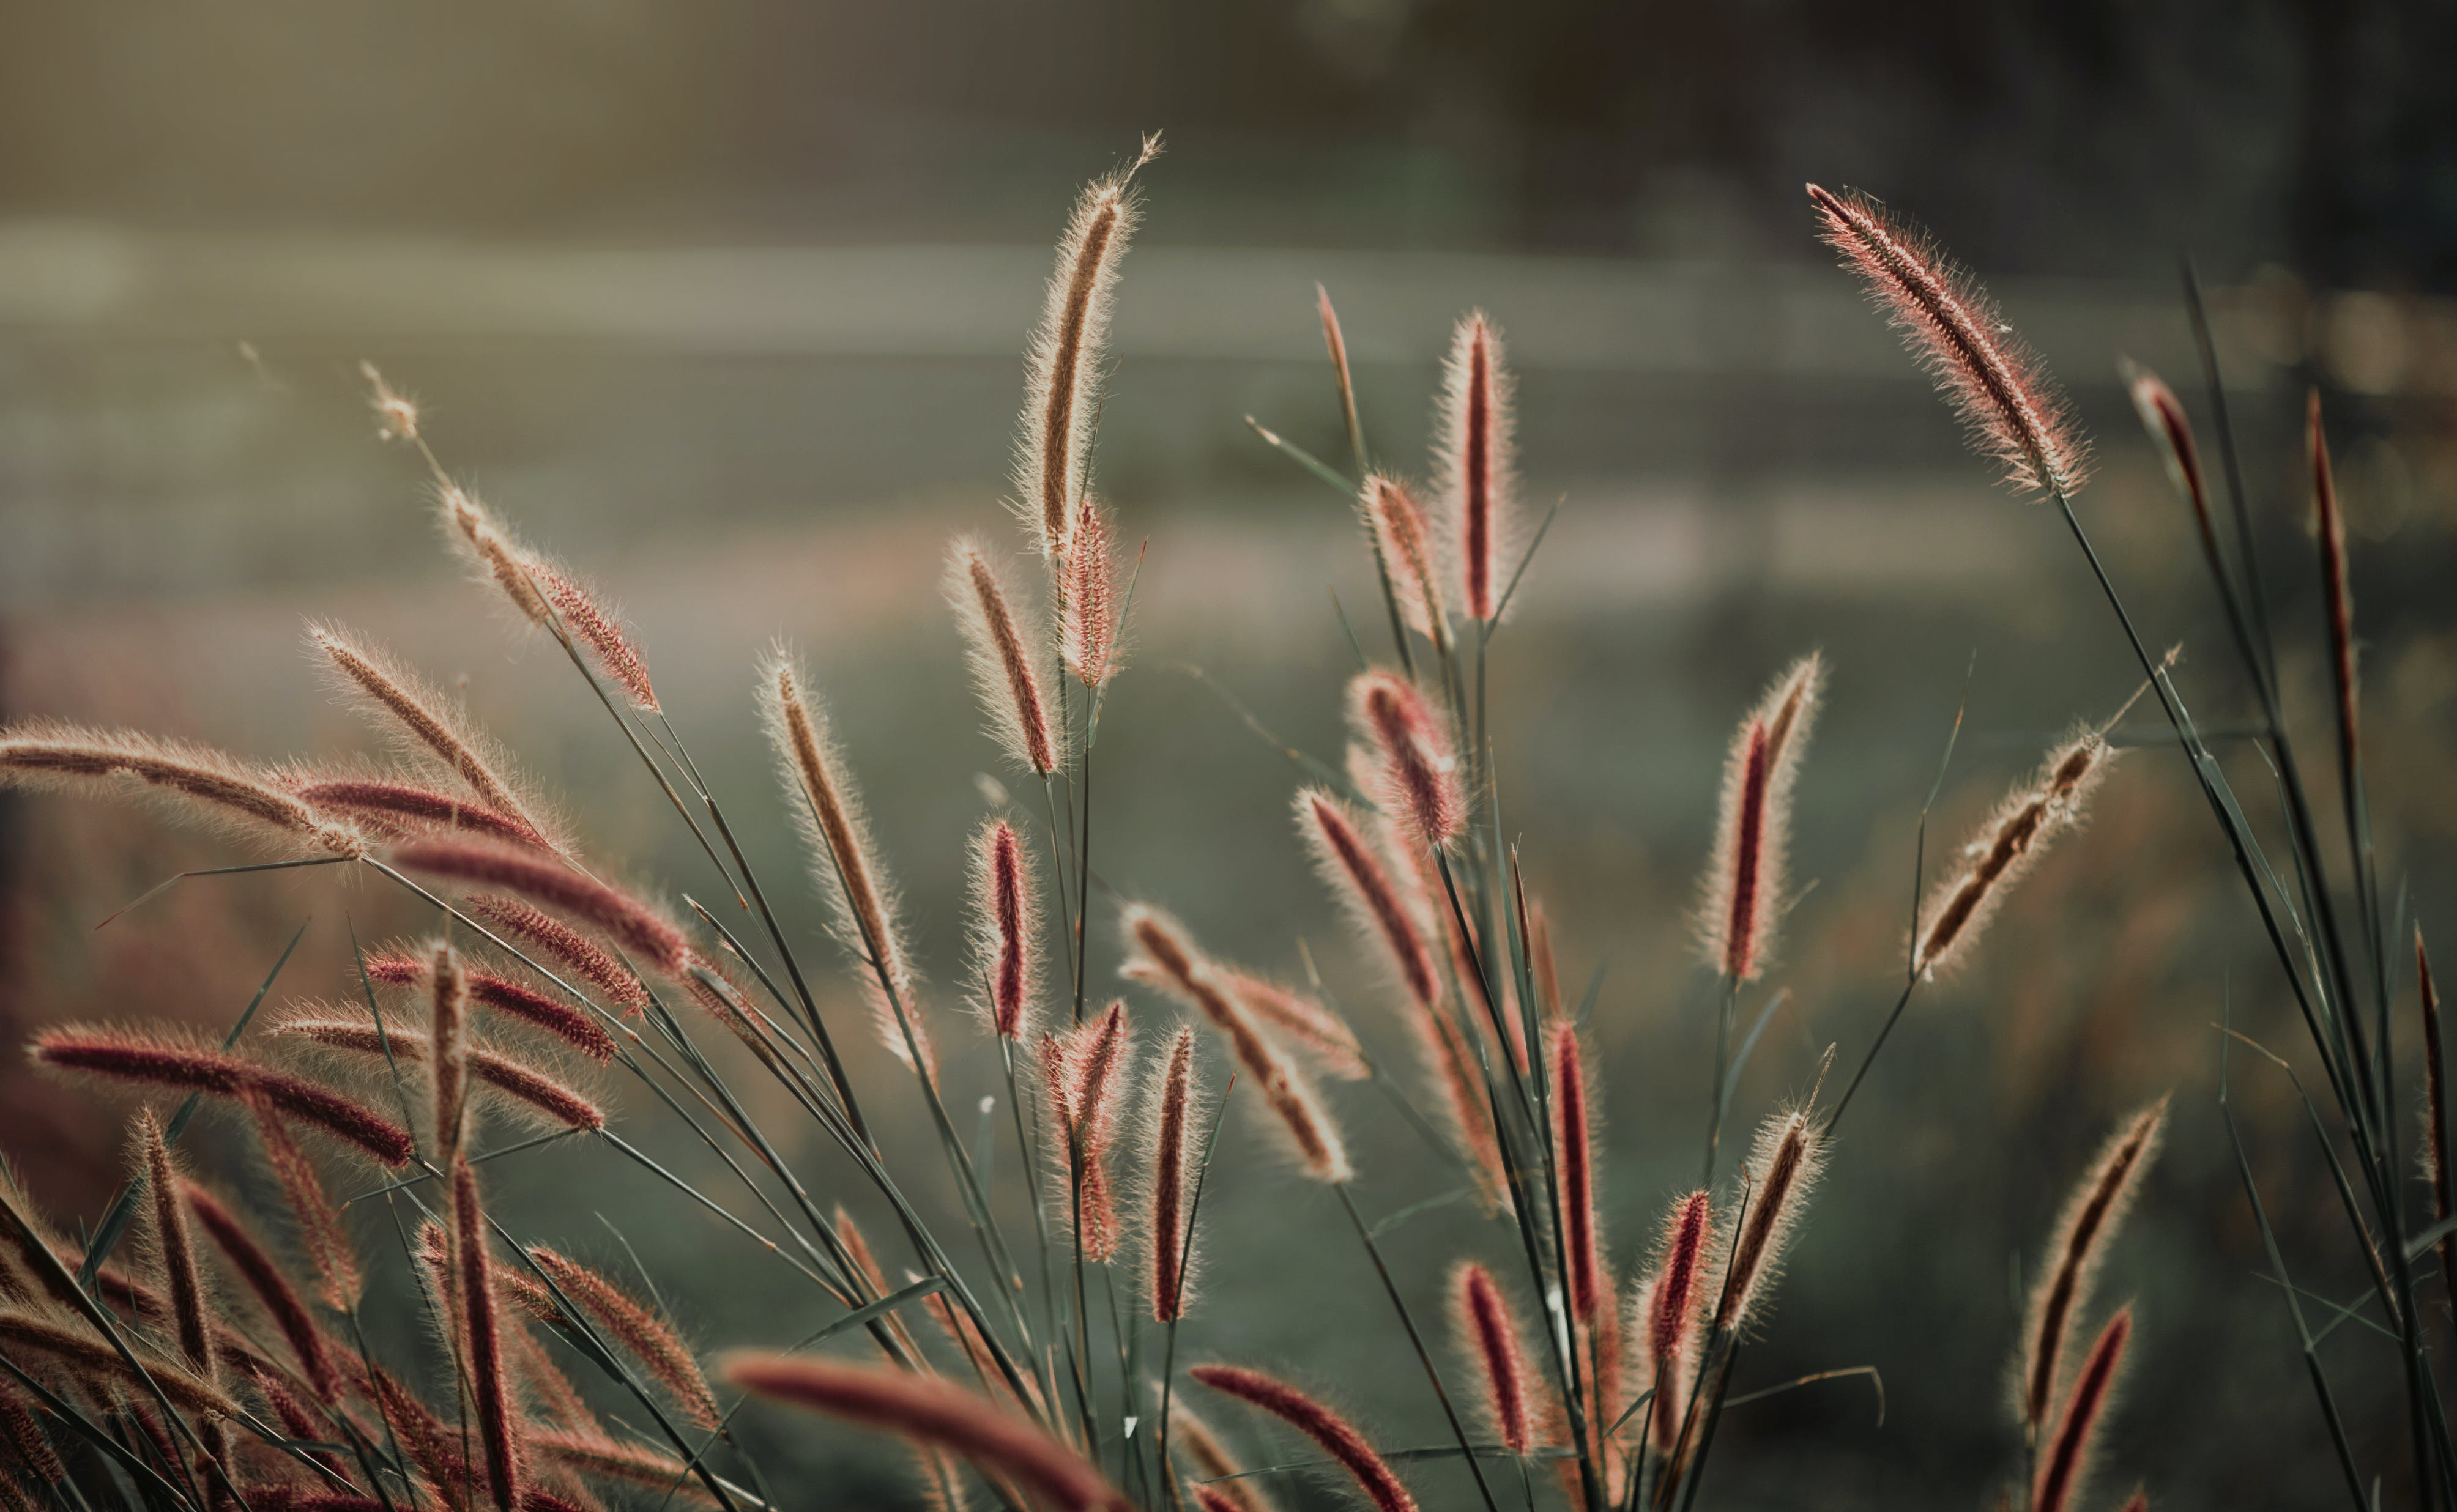 Close-up Photography of Grass